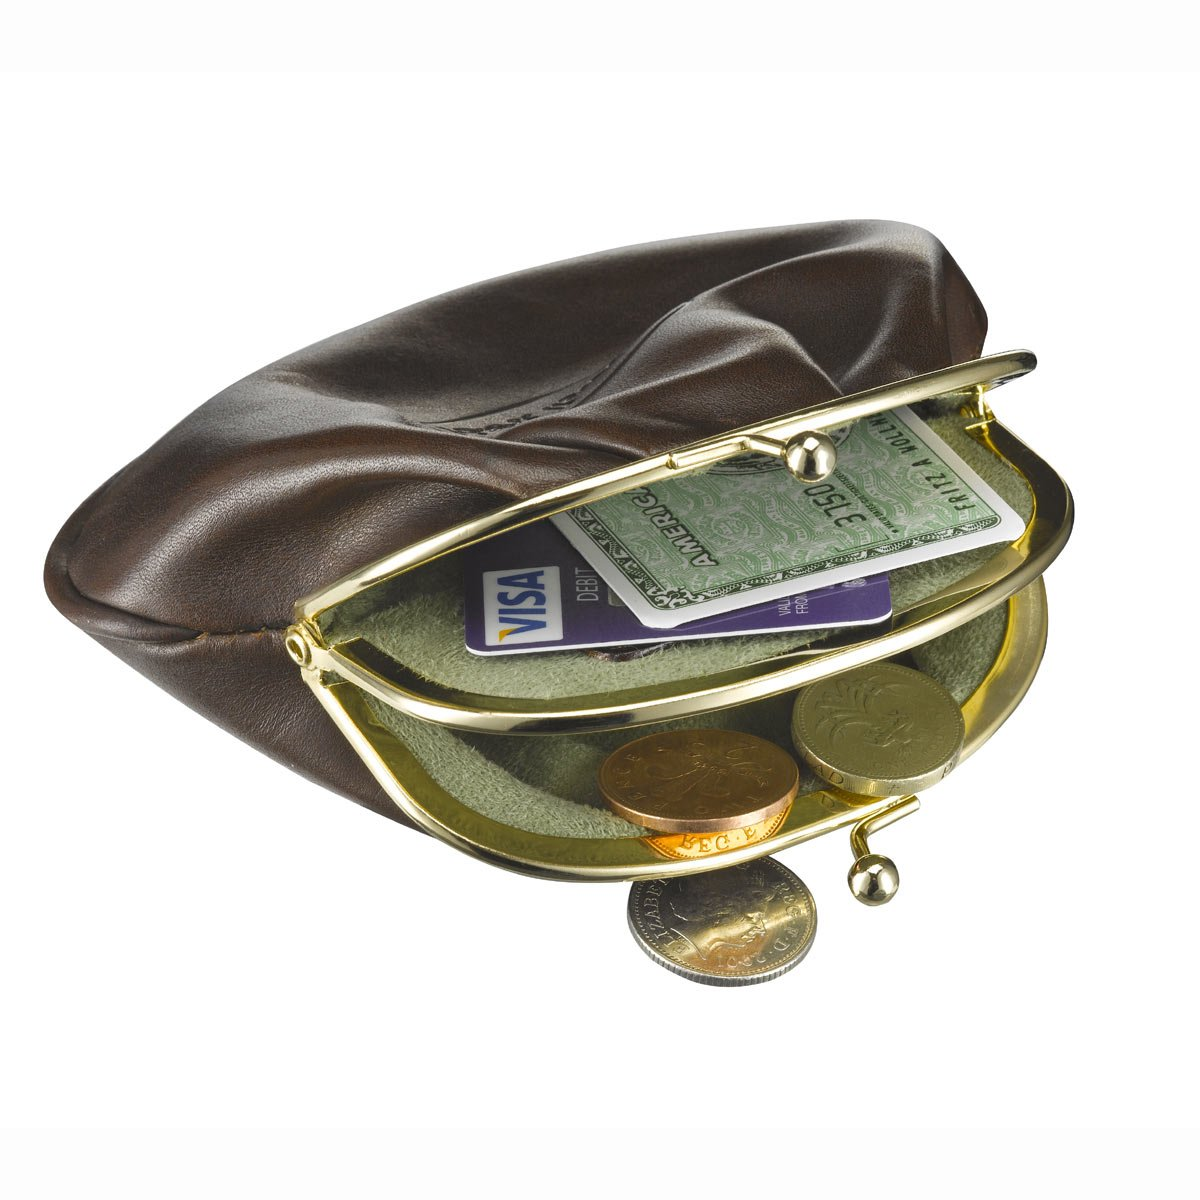 Maxwell Scott Luxury Black Leather Coin Purse / Wallet - One Size (The Sabina) by Maxwell Scott Bags